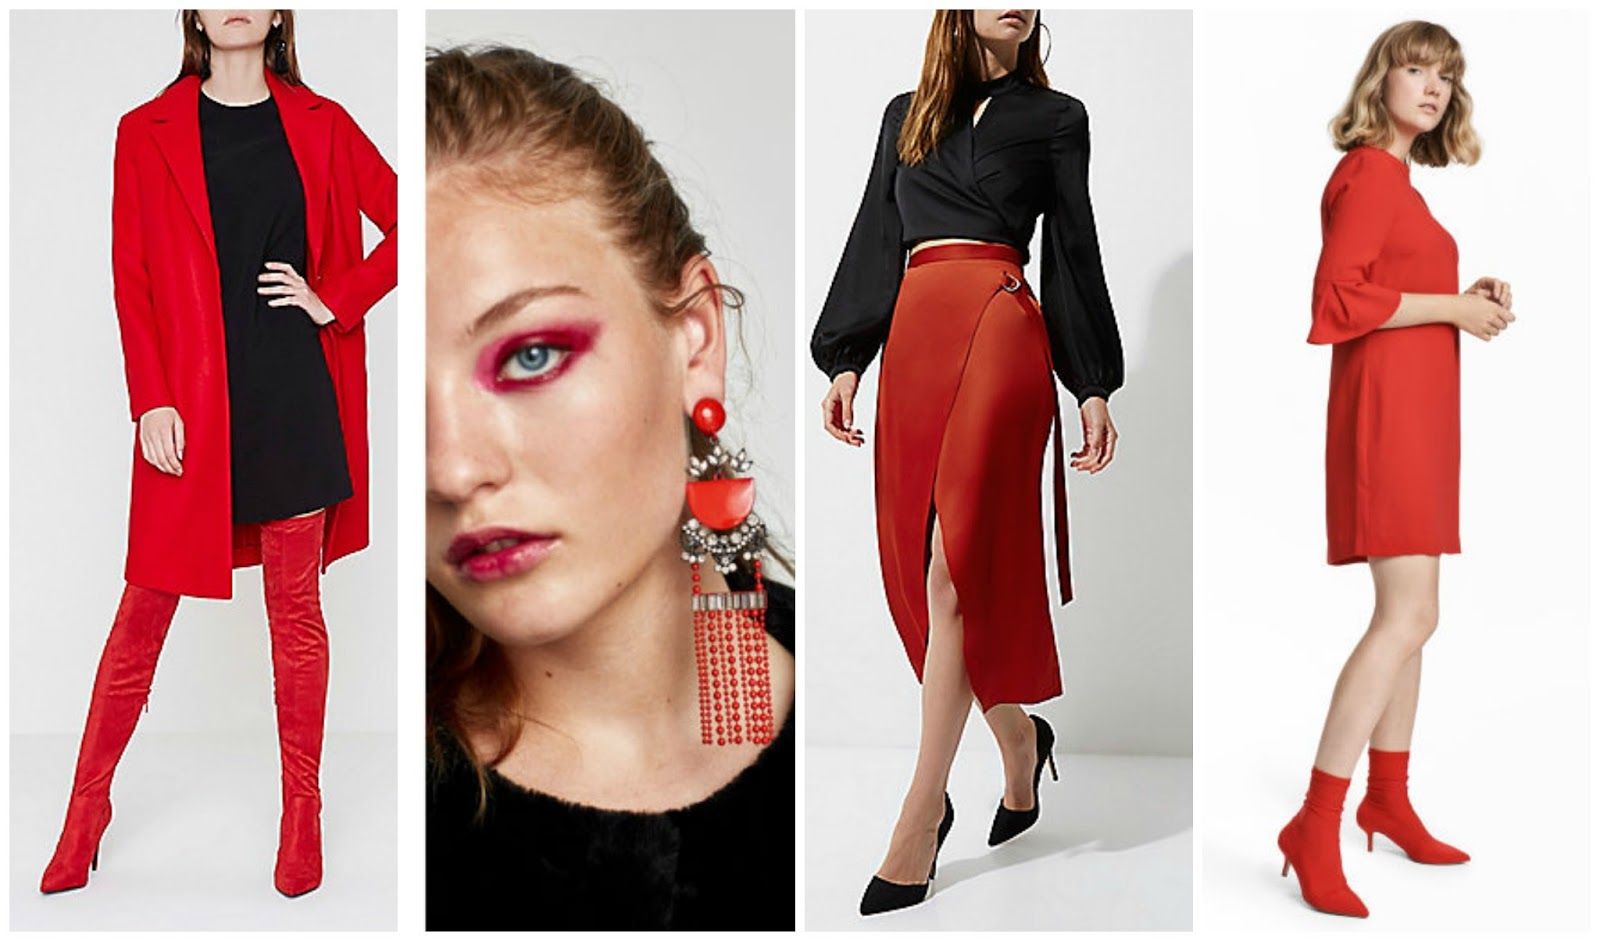 AW 17 Trend Focus - Red To Toe - How To Get The Look On The High Street - 1